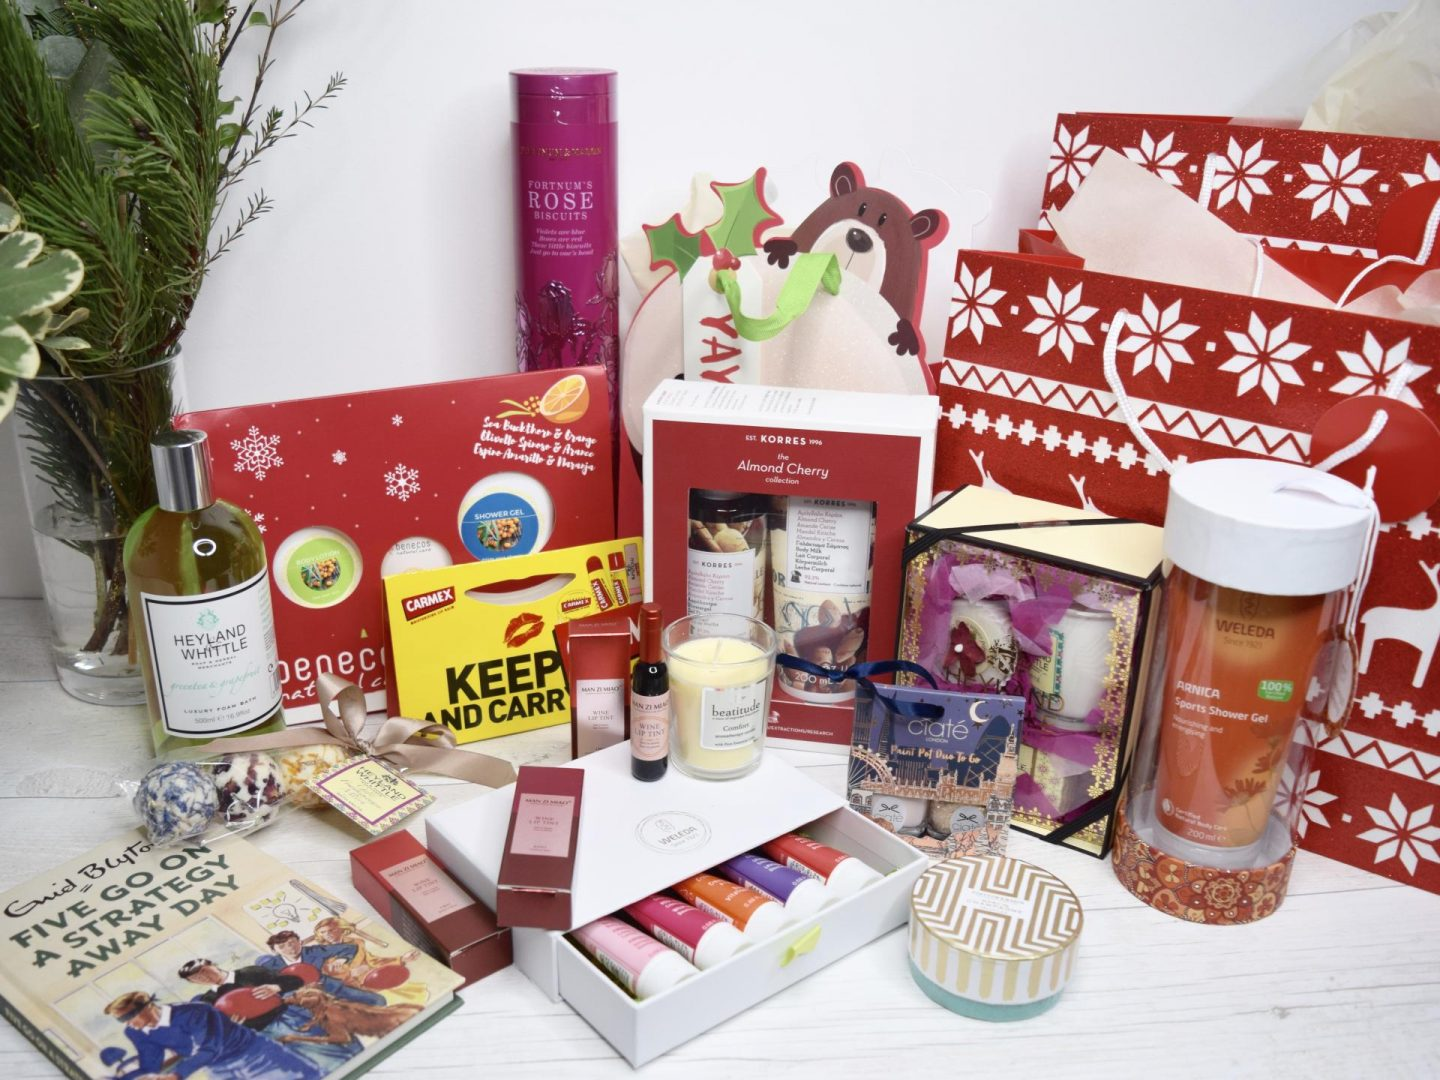 Christmas Gifts Under 20.Last Minute Christmas Gifts 20 Under 20 I Heart Cosmetics